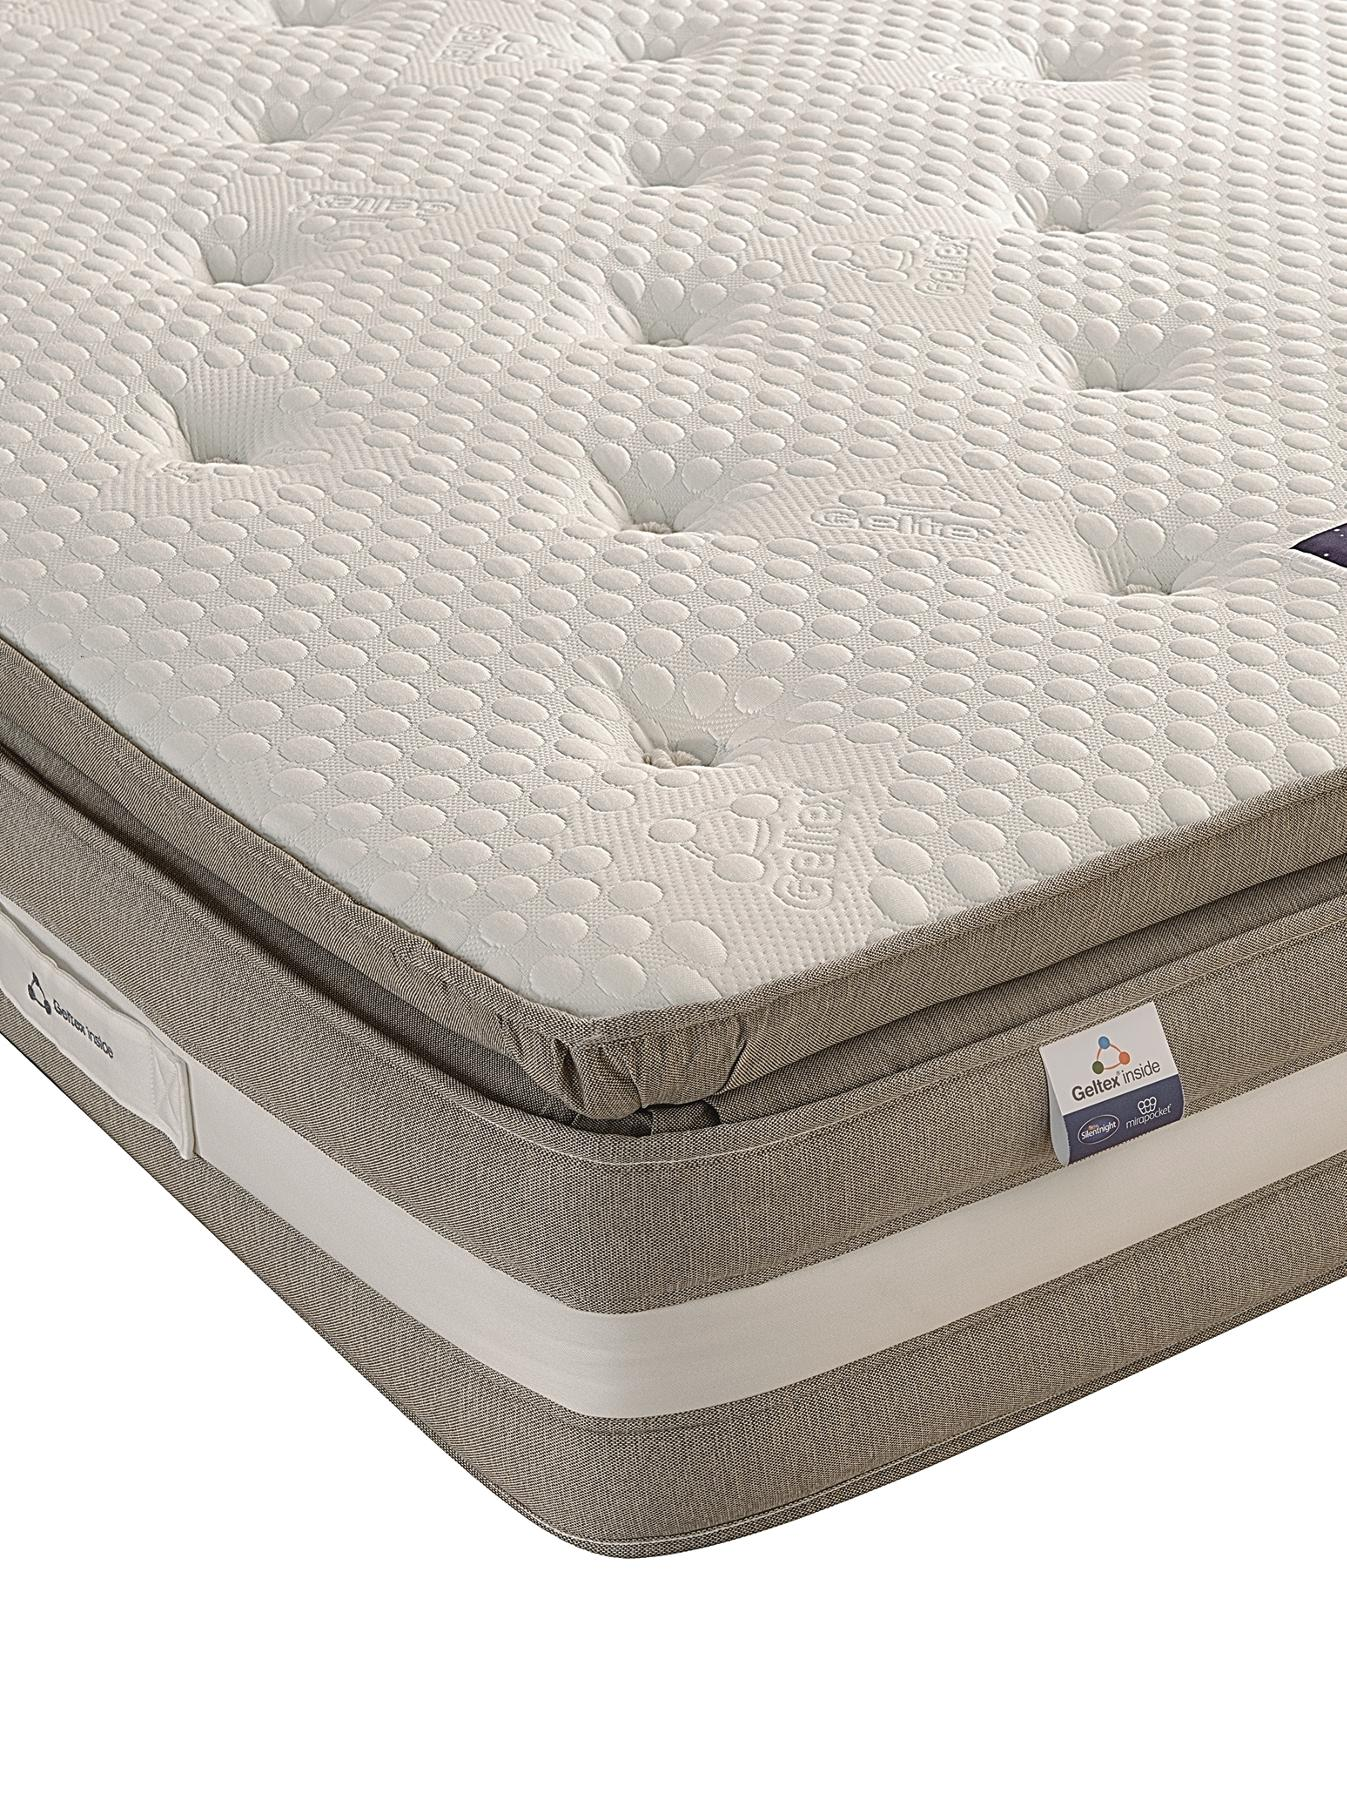 Silentnight Geltex Affinity 1850 Pocket Pillow Top Mattress